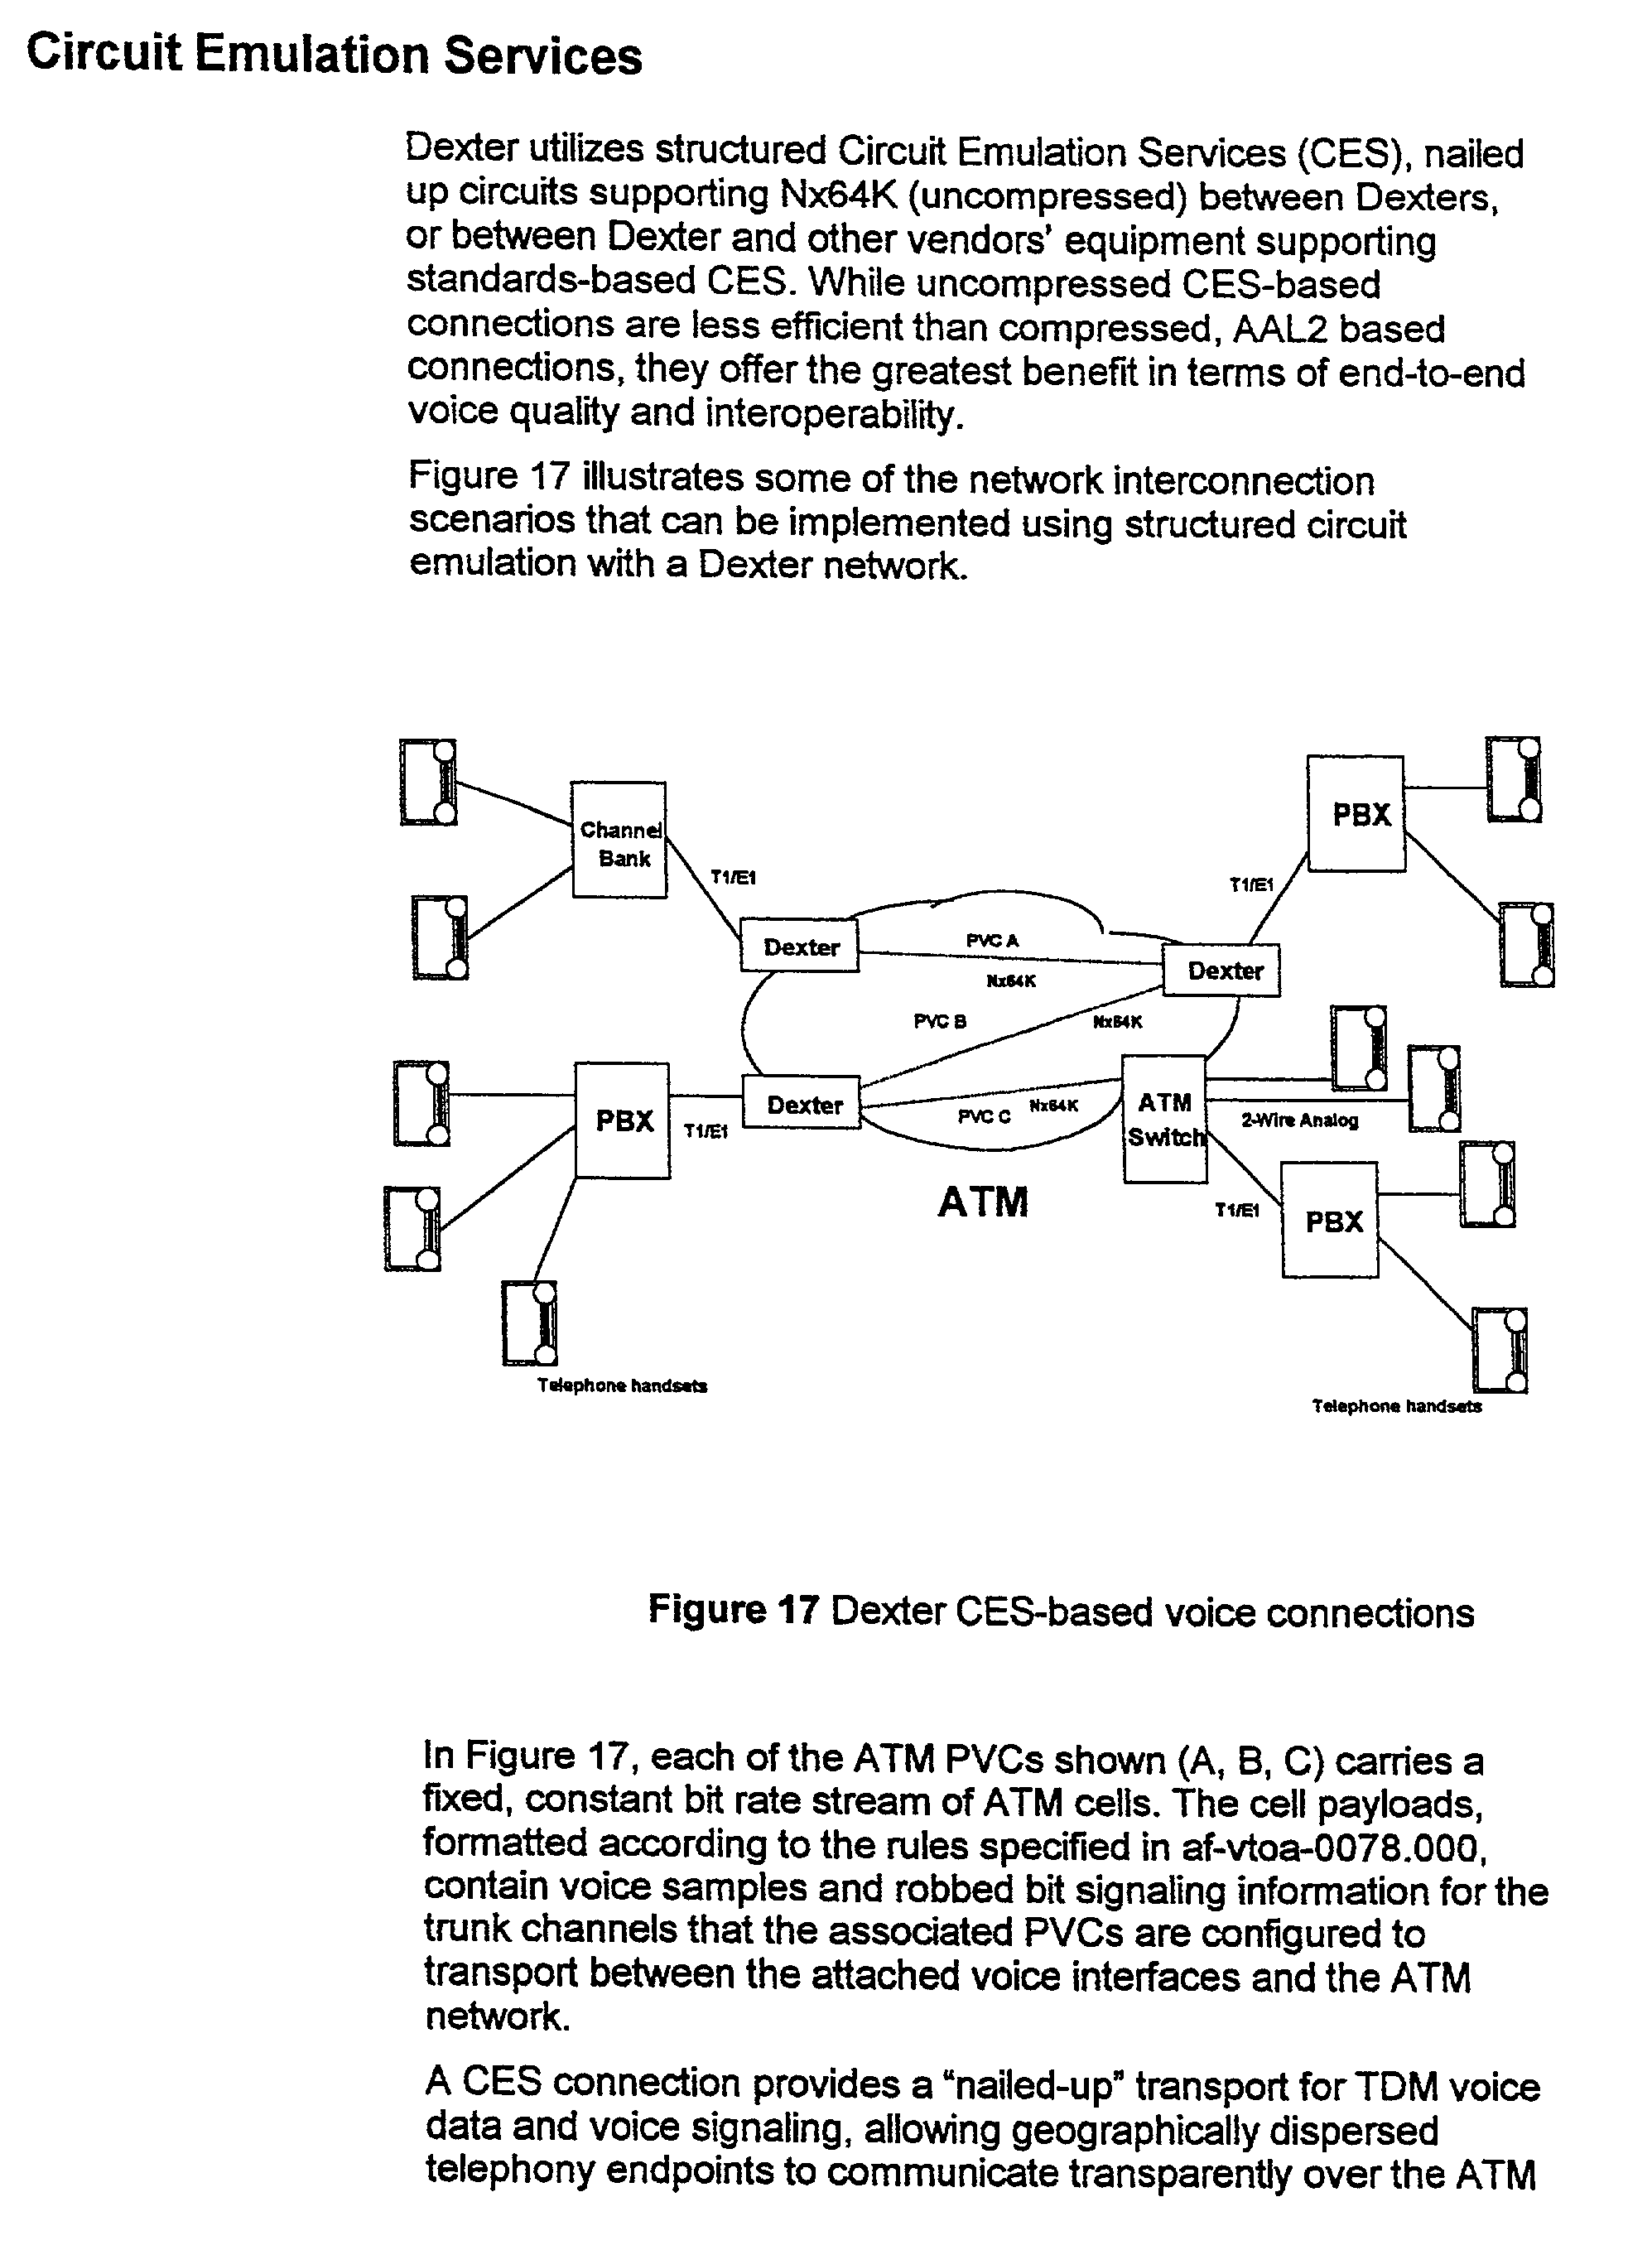 Us20020034162a1 Technique For Implementing Fractional Interval Dexter Wiring Diagram Figure 20020321 P00041